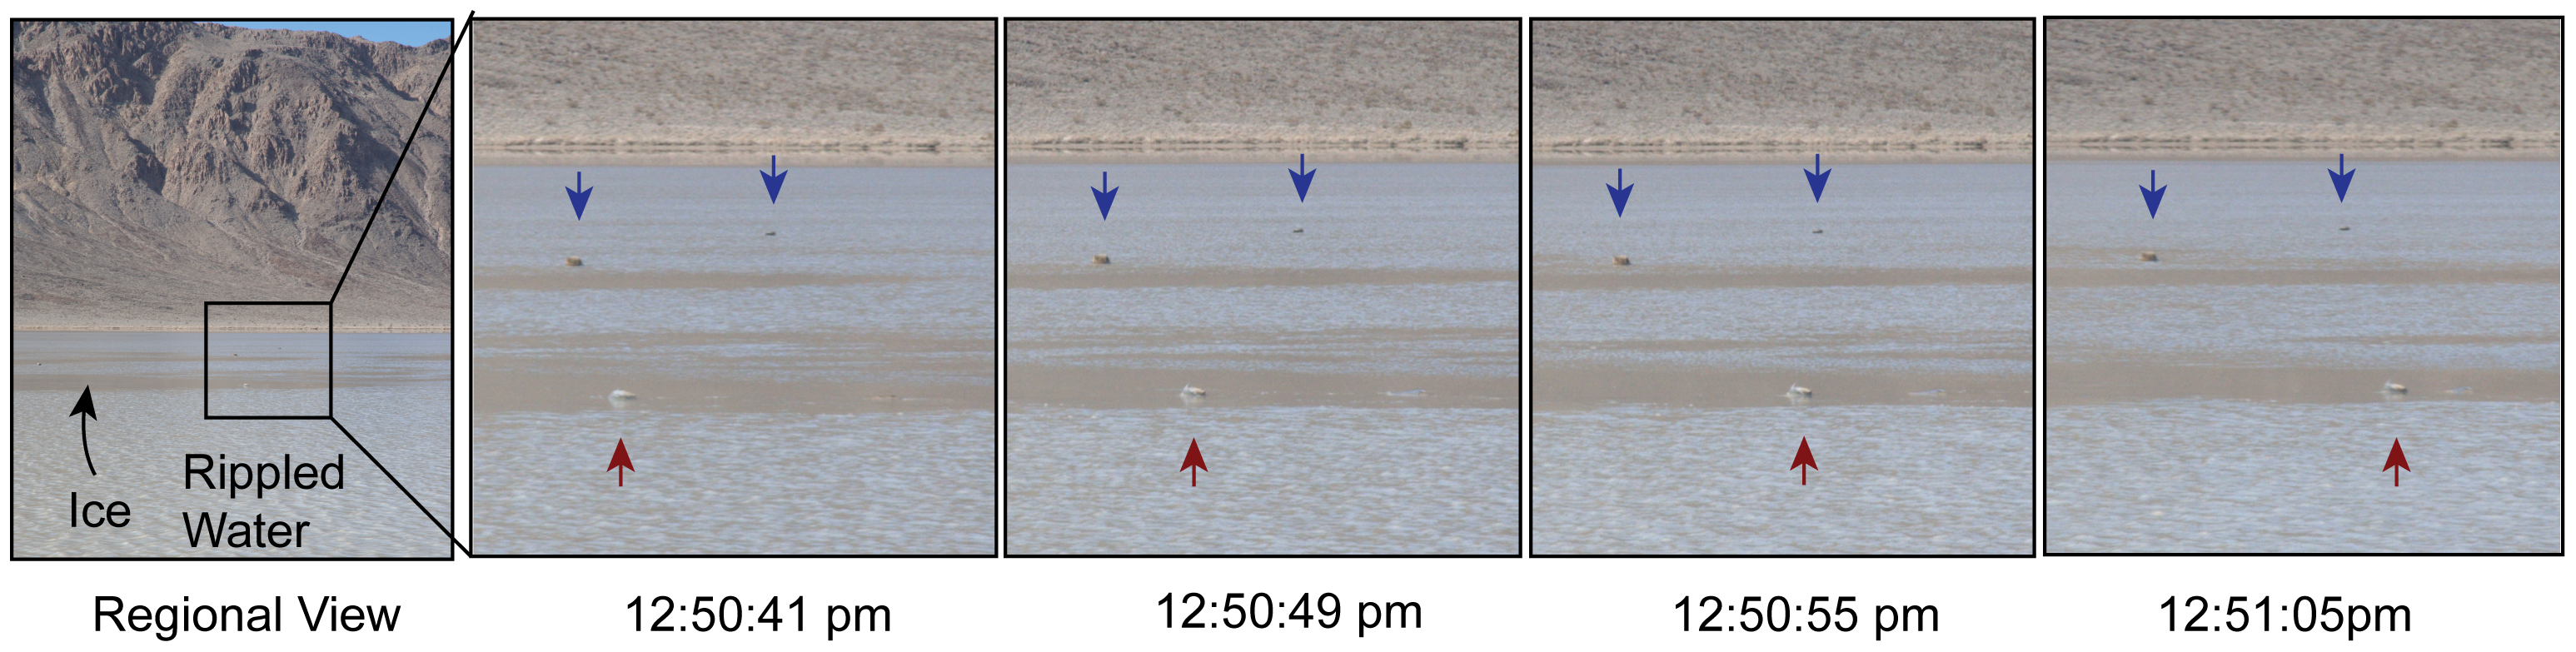 Images of a moving rock, from time-lapse video. Source: Figure 1, Sliding Rocks on Racetrack Playa, Death Valley National Park: First Observation of Rocks in Motion. doi:10.1371/journal.pone.0105948.g001